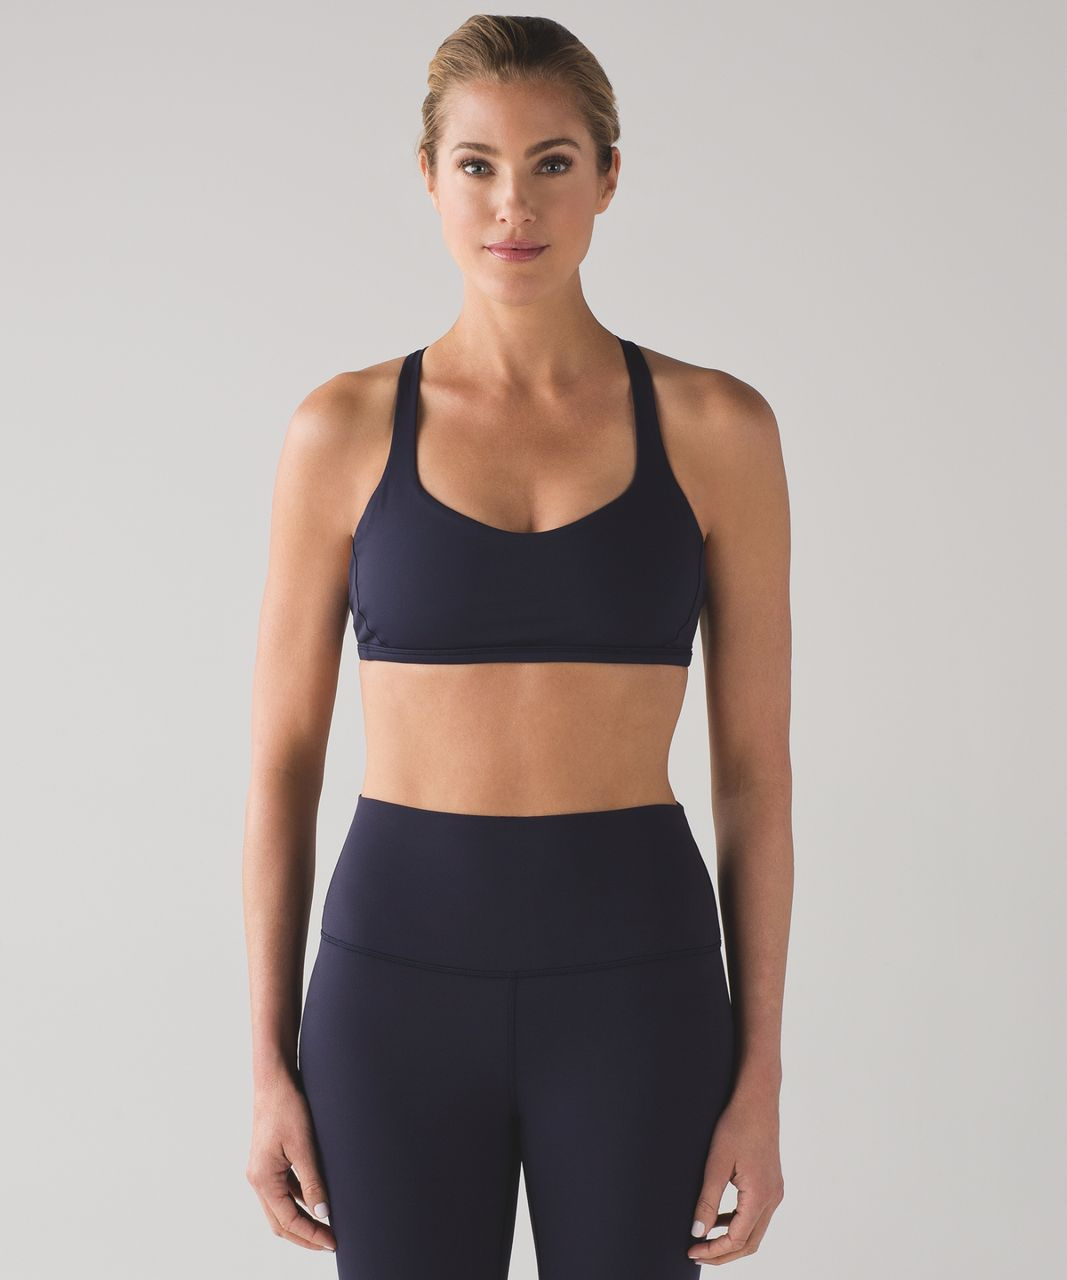 c825d73ba6 Lululemon Free To Be Zen Bra - Midnight Navy - lulu fanatics